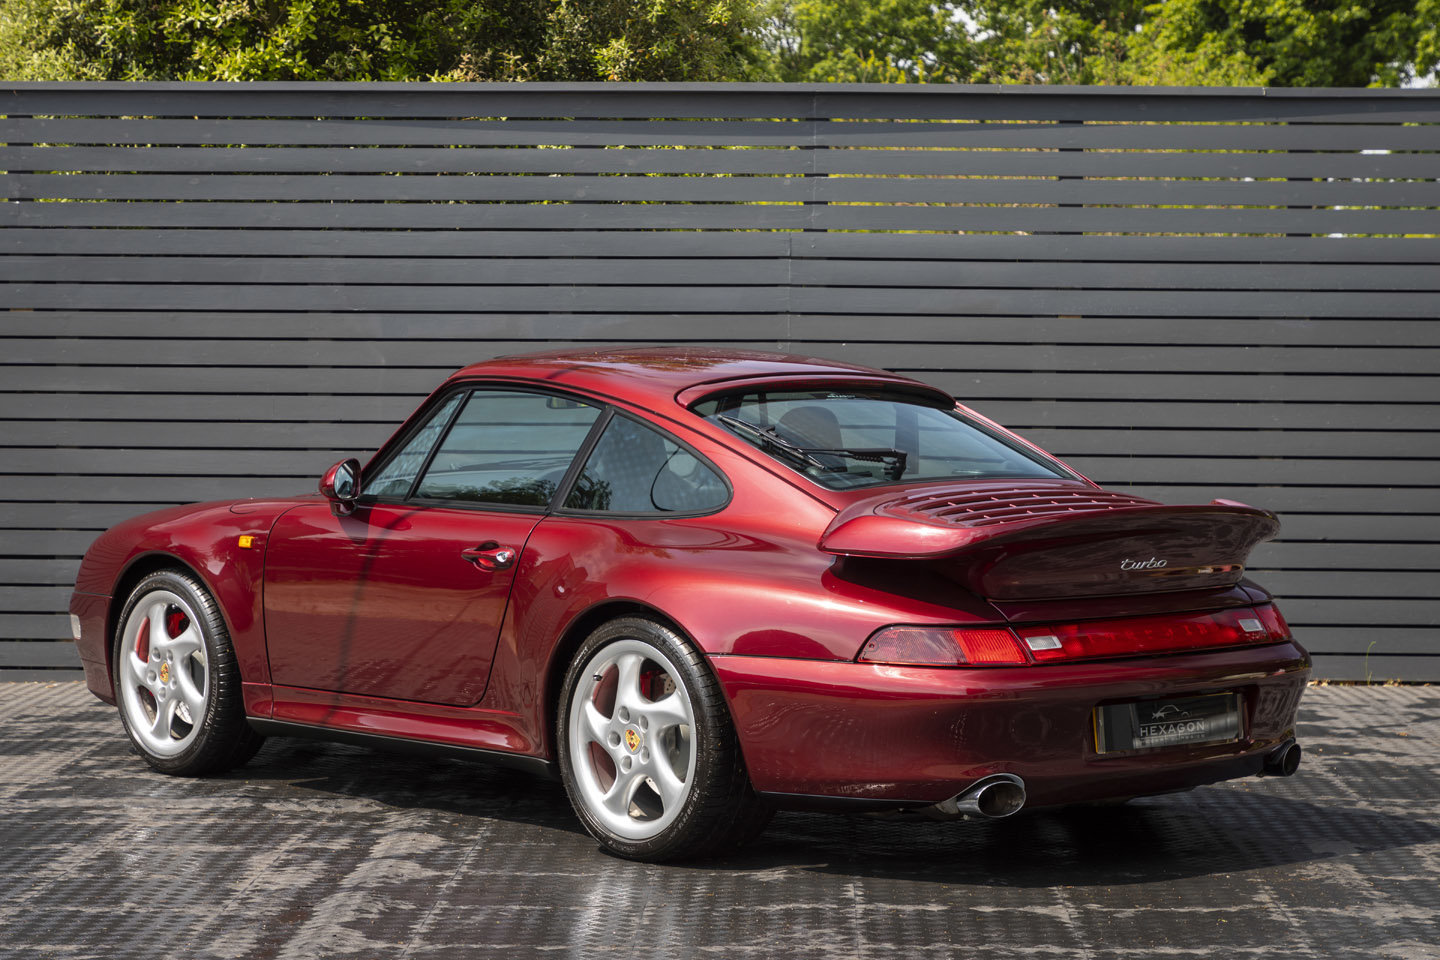 1995 PORSCHE 911 (993) TURBO ONLY UK CAR For Sale (picture 2 of 19)